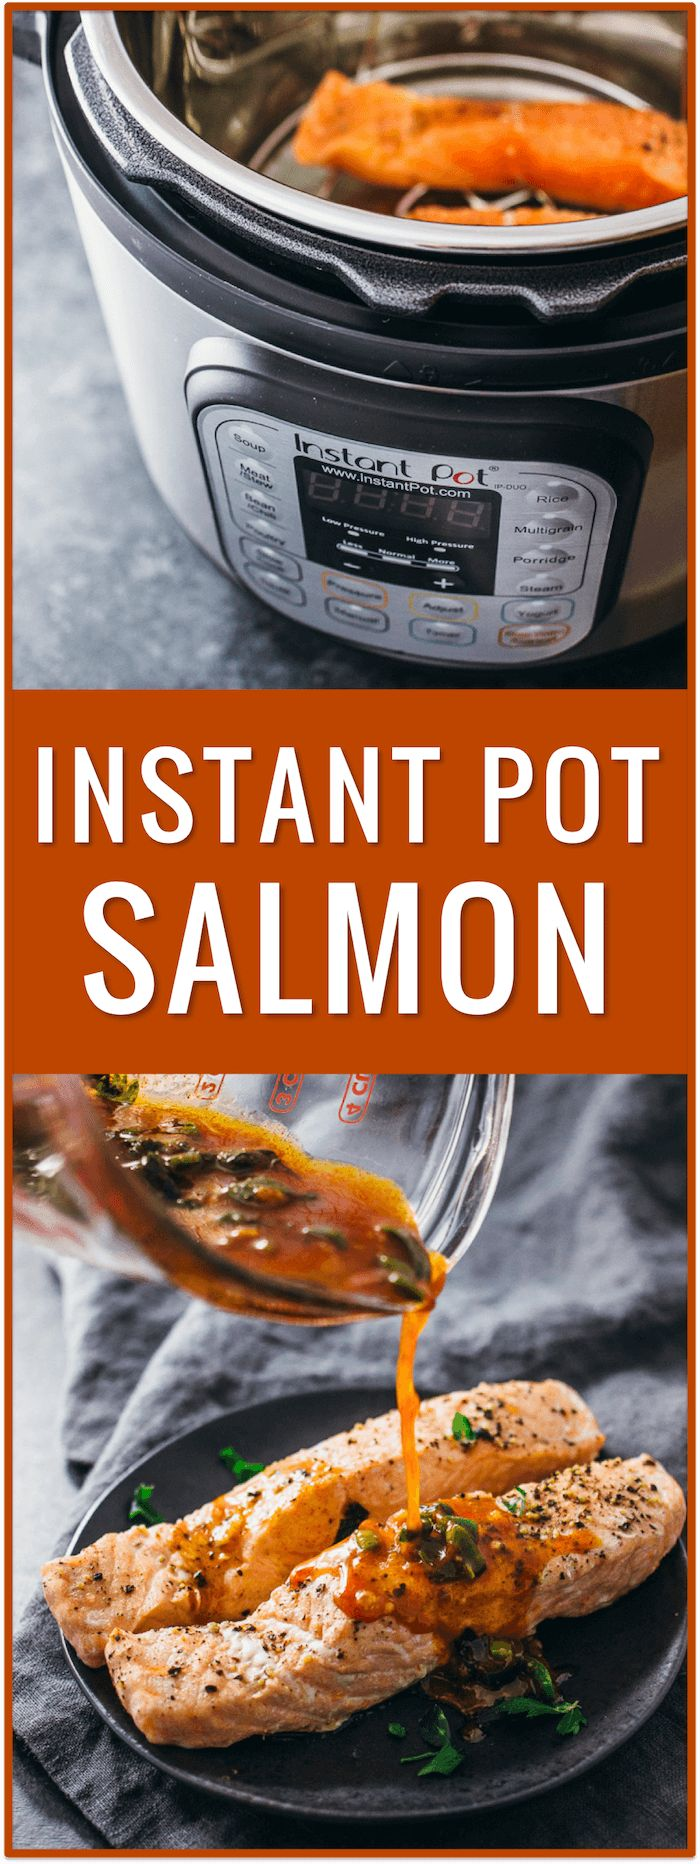 Salmon in Chili Lime Sauce (Instant Pot) - exclude honey for Keto